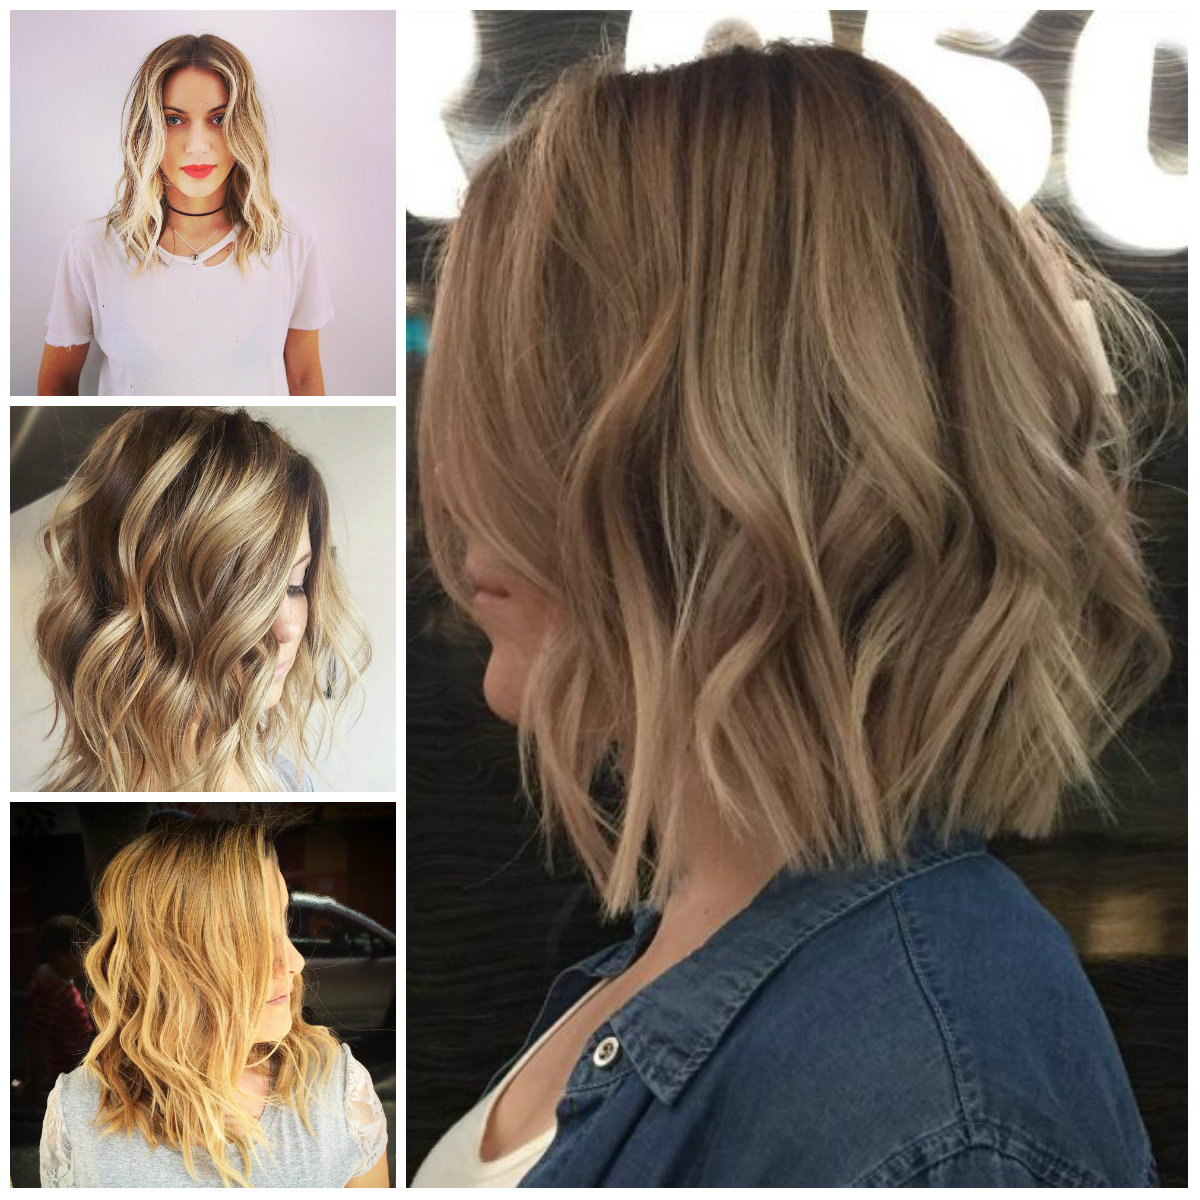 Pictures Of Medium Hairstyles For 2017 : Stylish short wavy hairstyles for haircuts